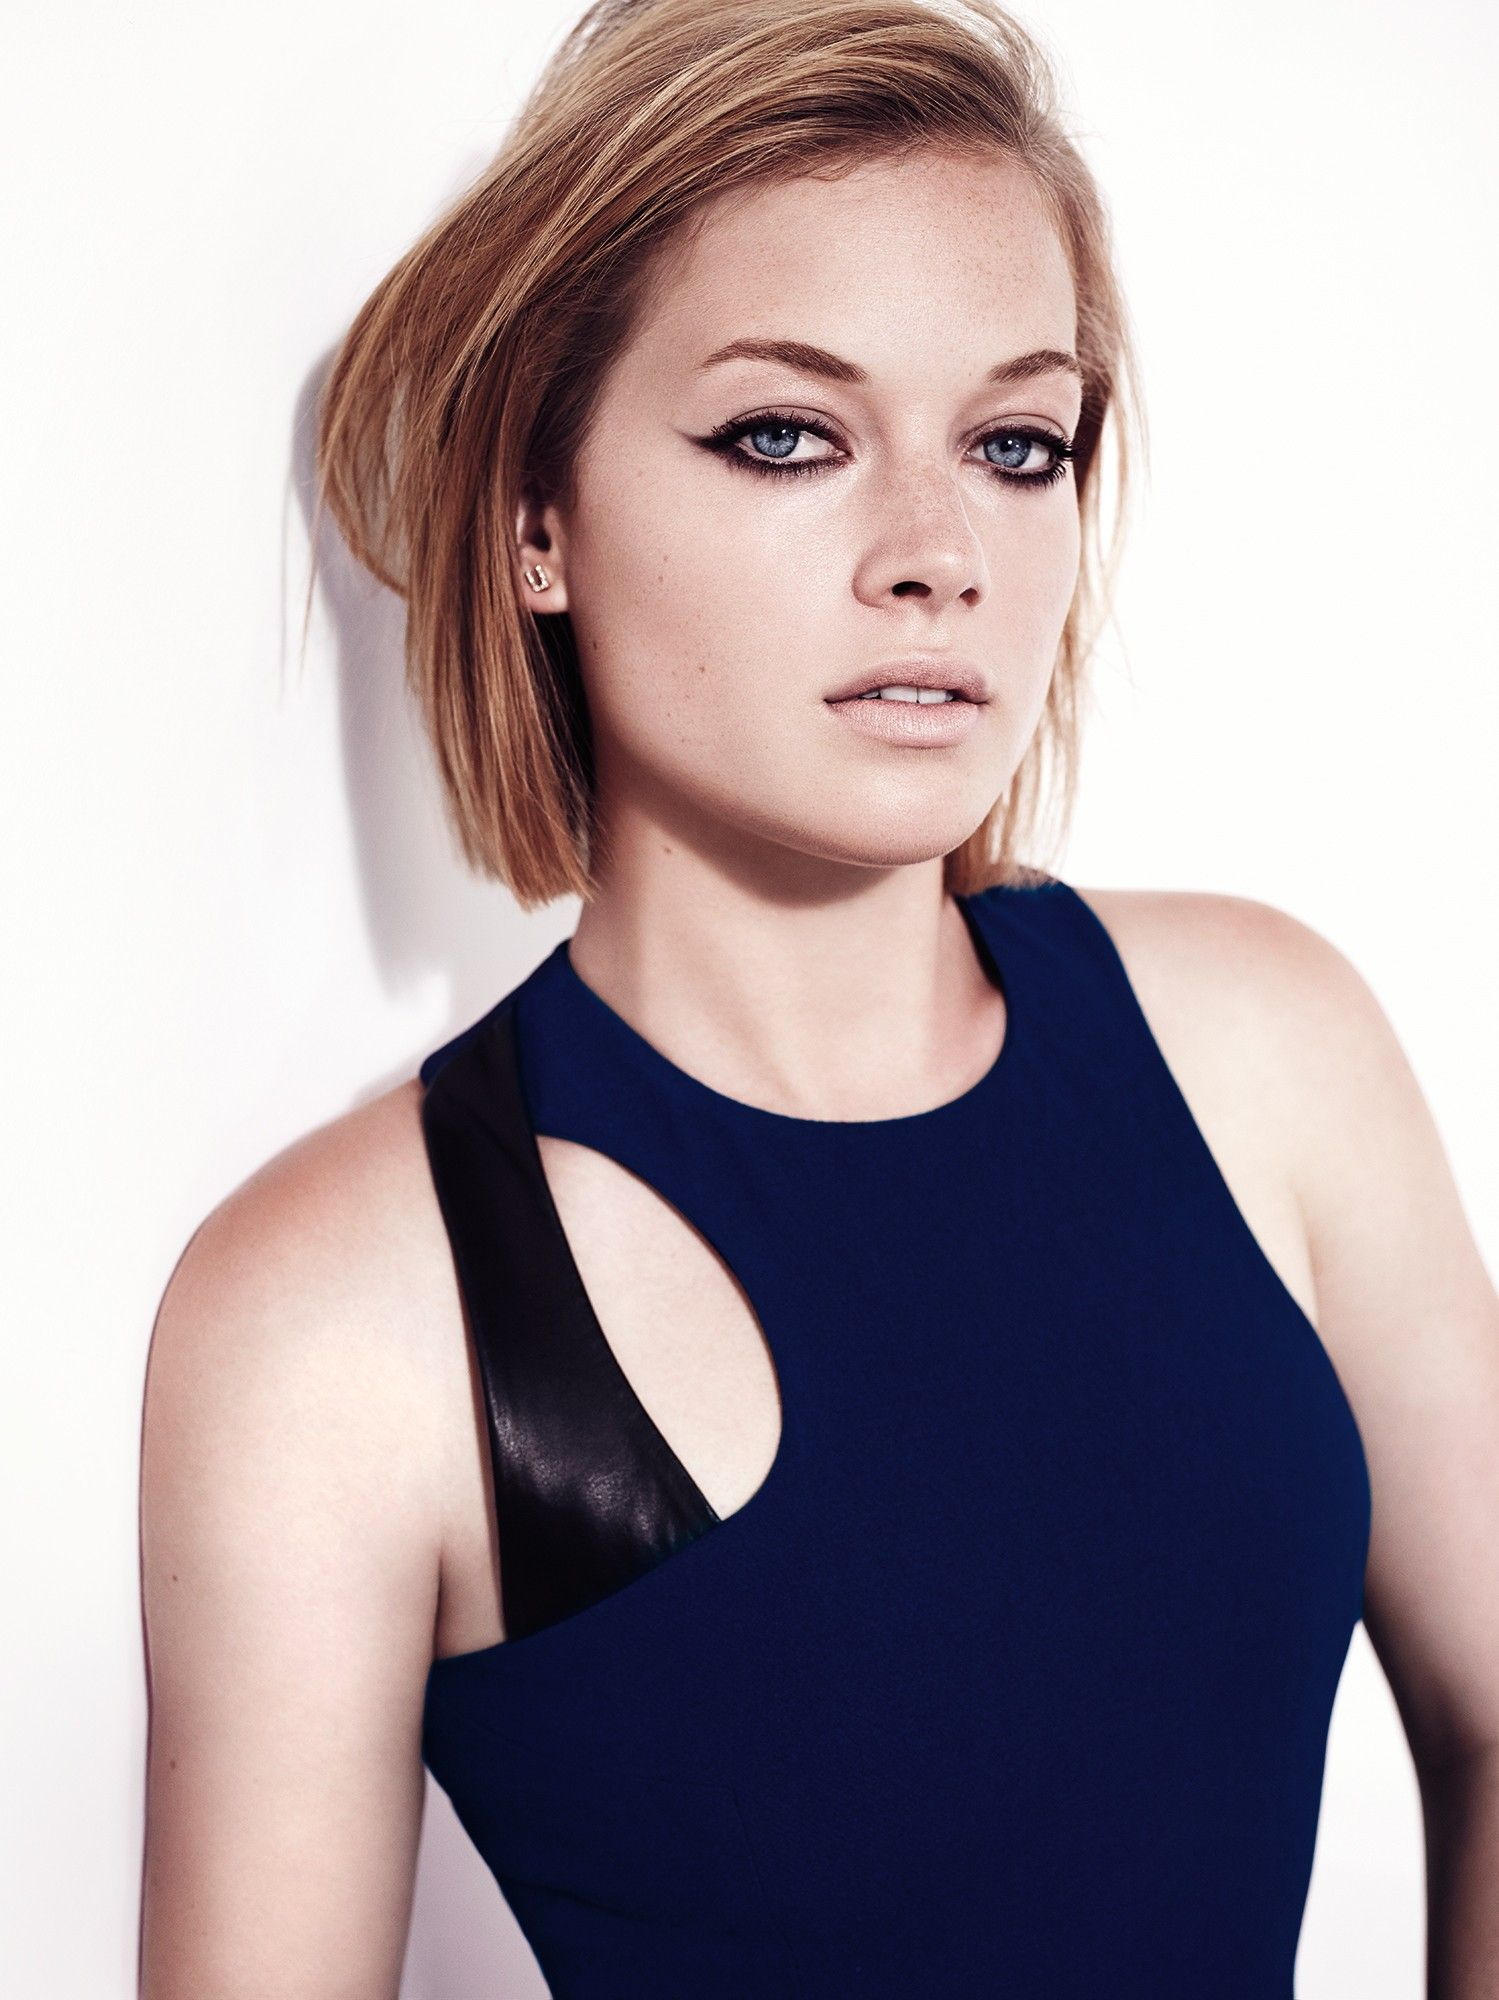 Jane Levy Hd Wallpaper From Gallsourcecom Jane Levy